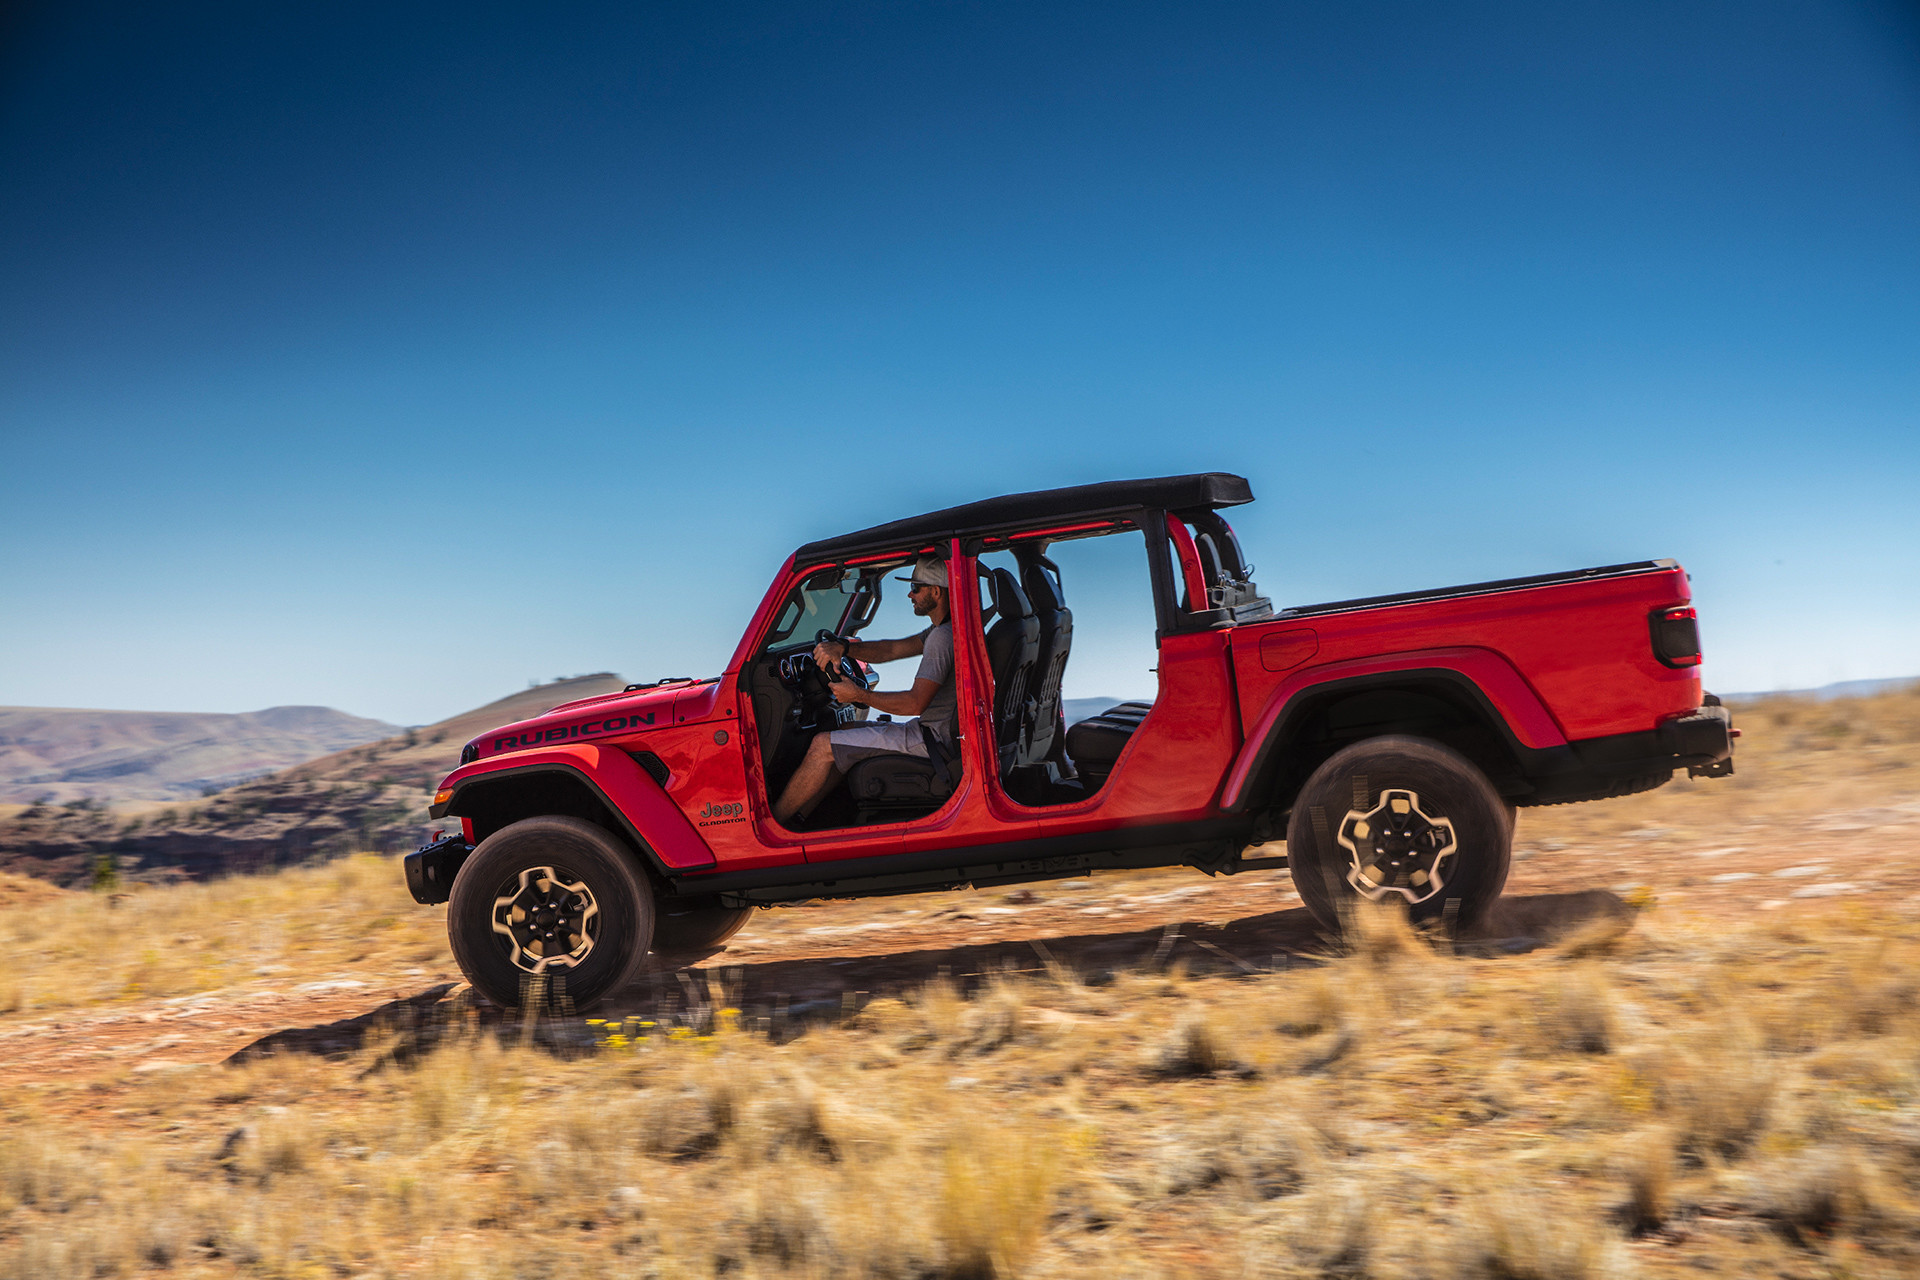 2016 Jeep Gladiator >> All New 2020 Jeep Gladiator Exterior Gallery Jeep Canada